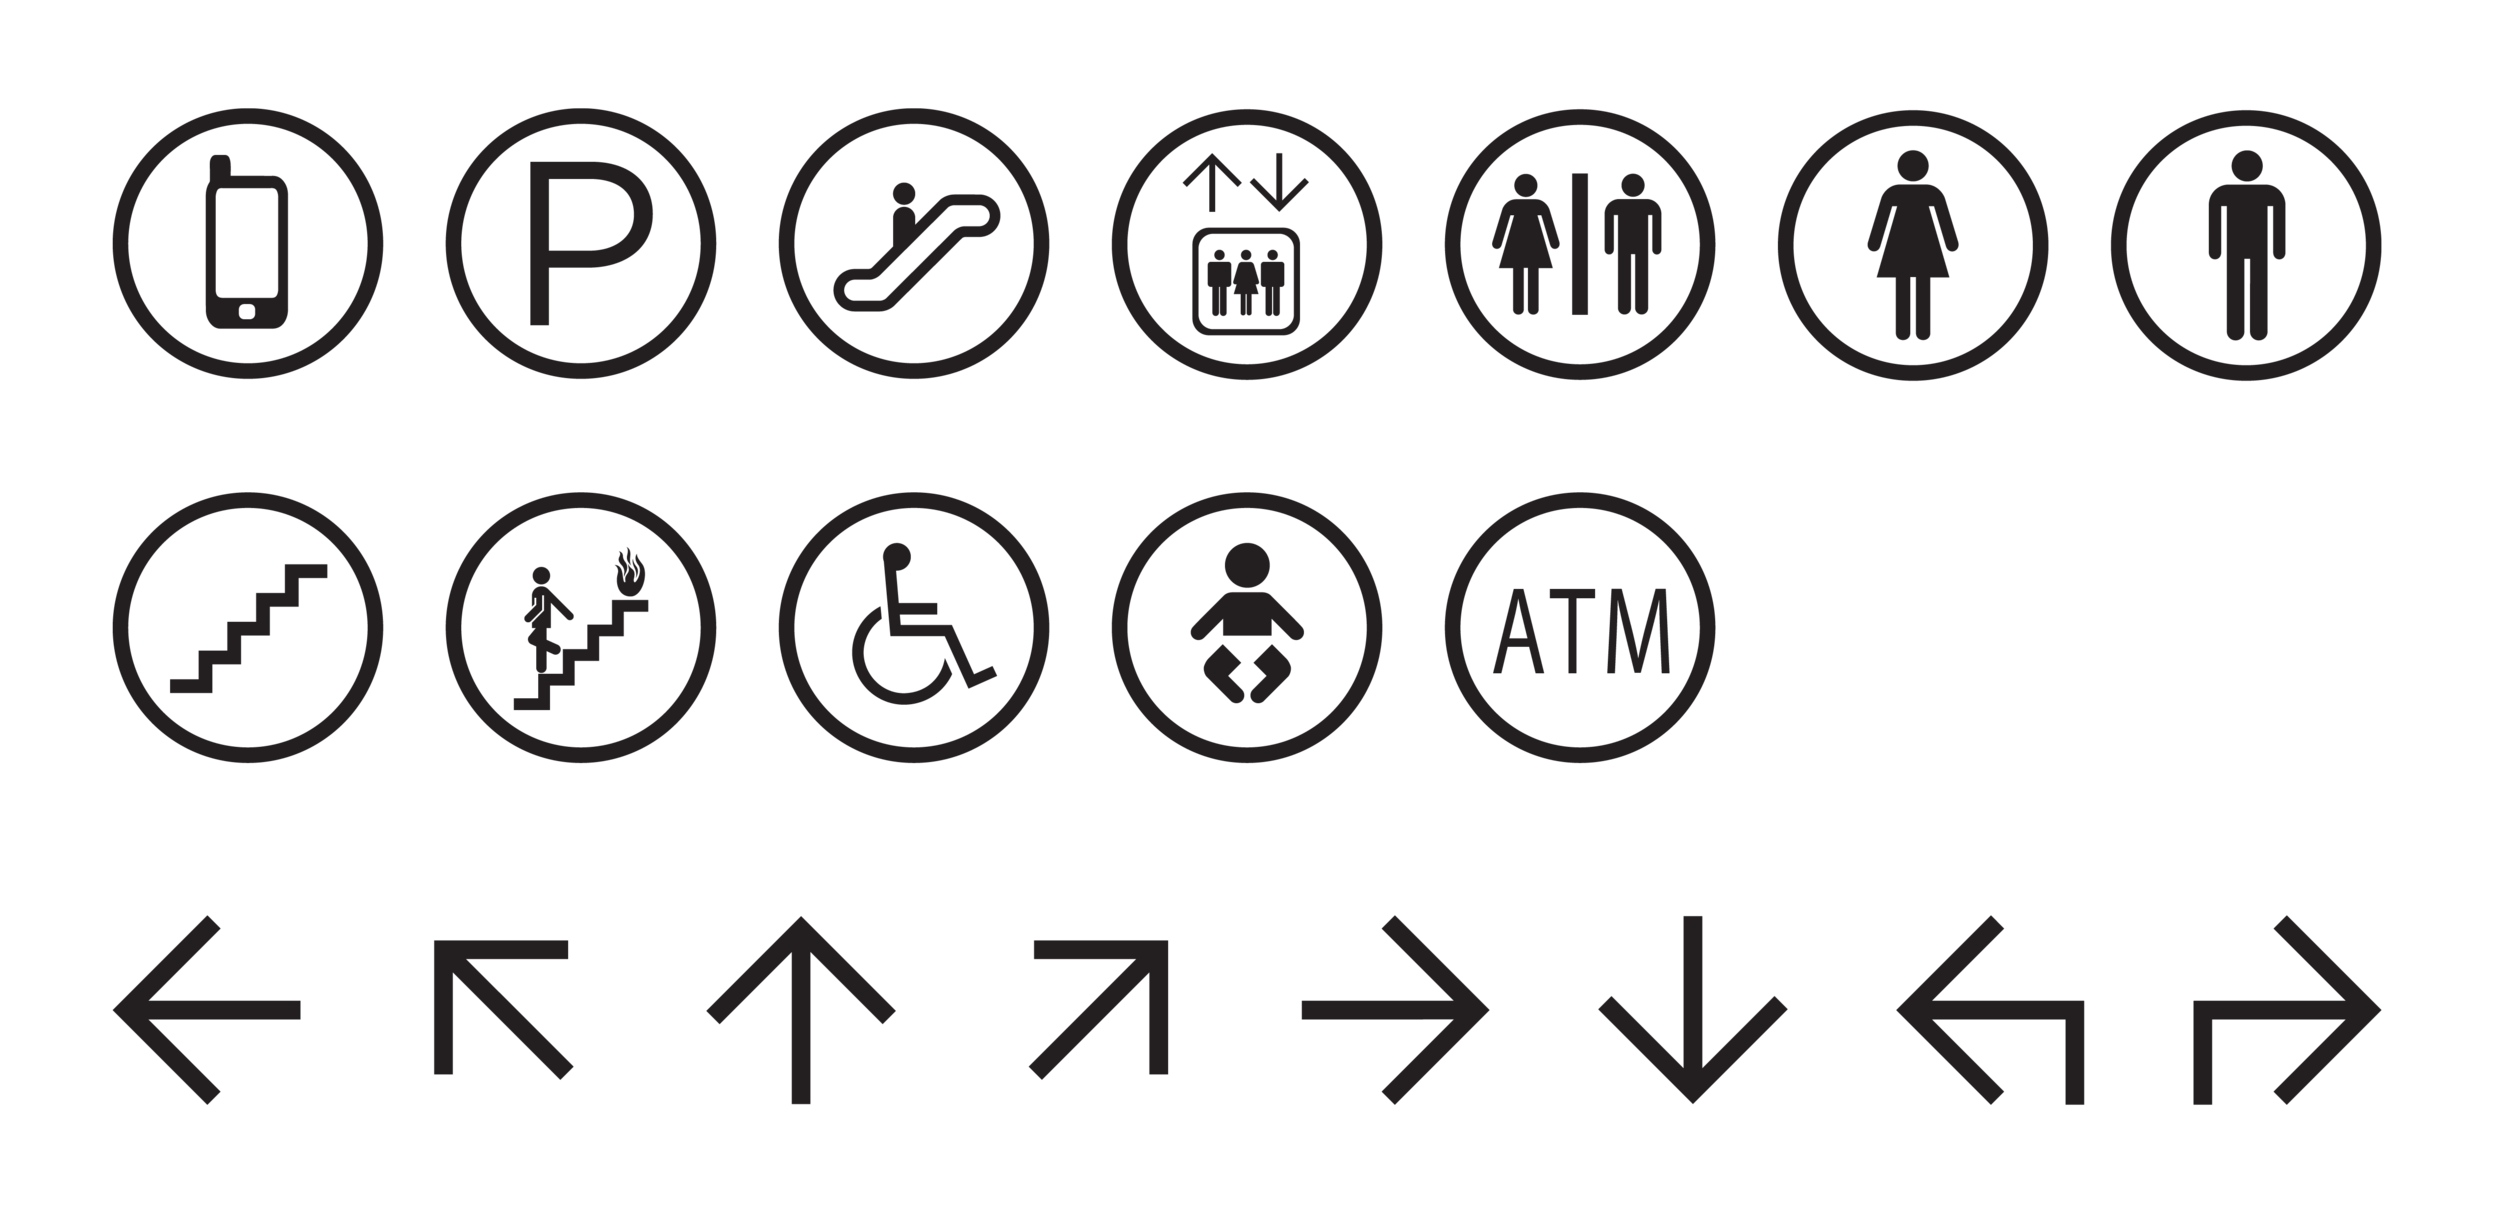 A system of custom iconography was developed to accent the new logo and simplify wayfinding